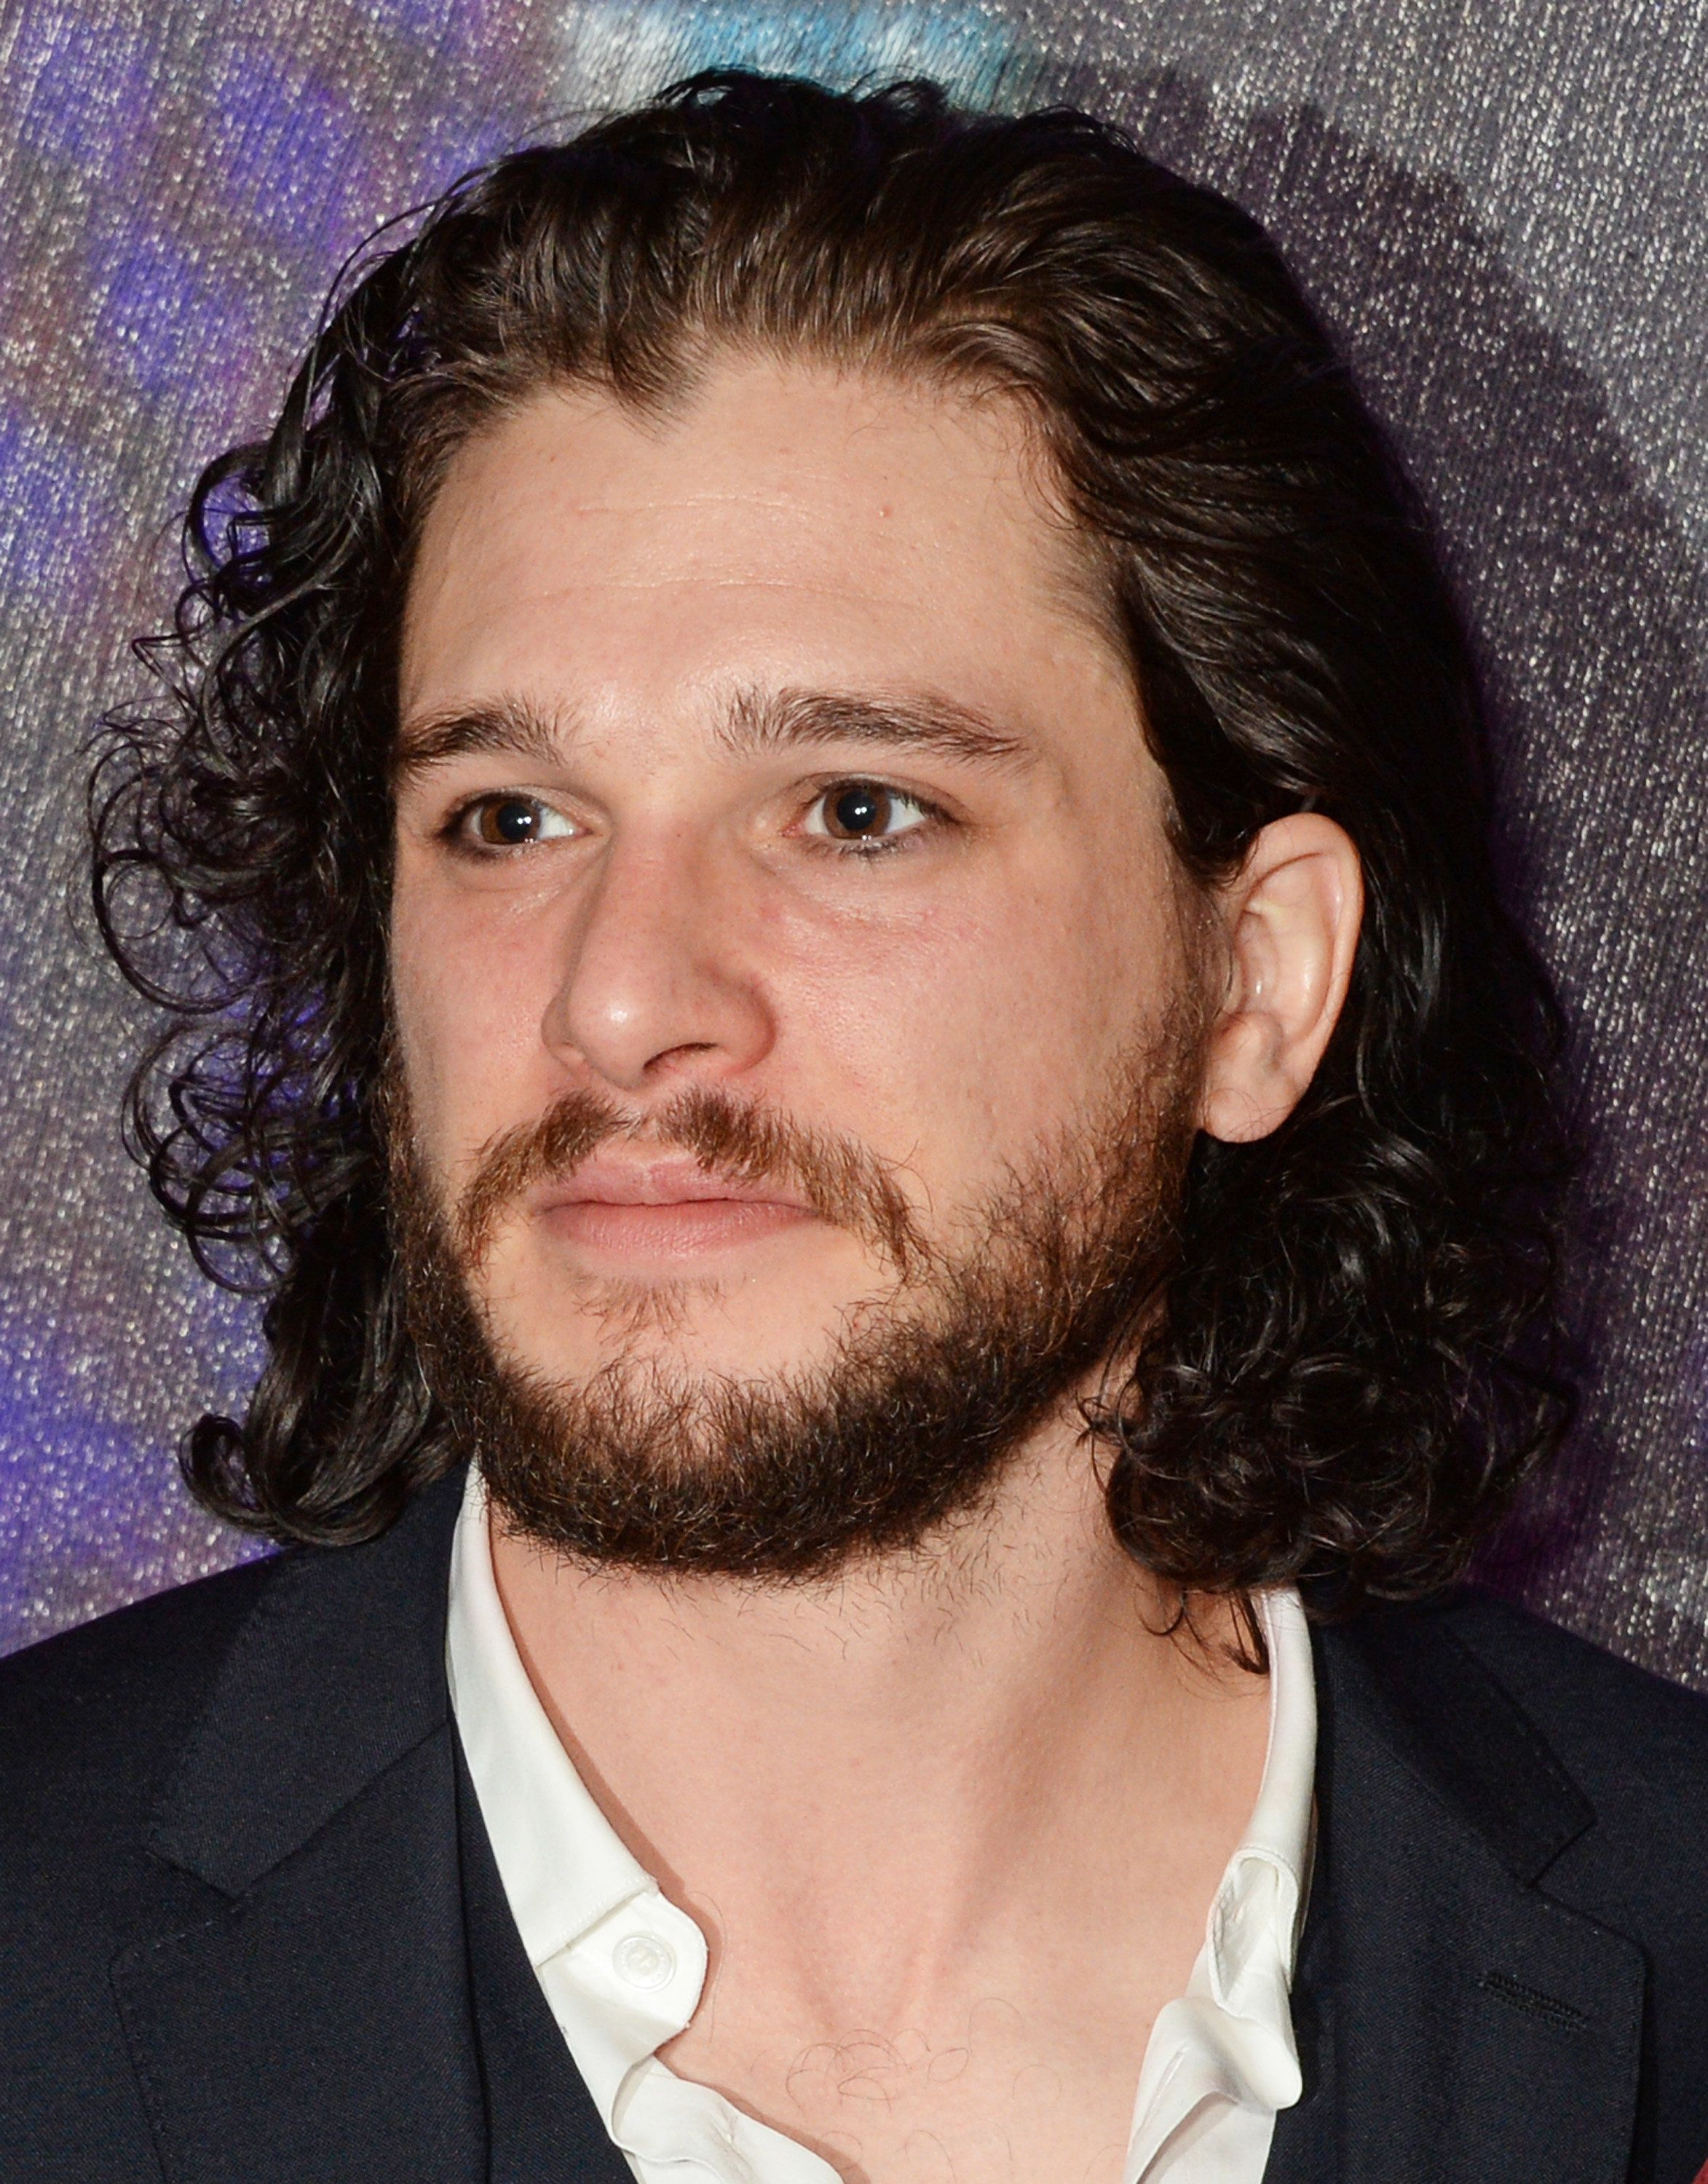 Kit Harington's Shaved Off His Beard And 'GOT' Fans Can't Handle